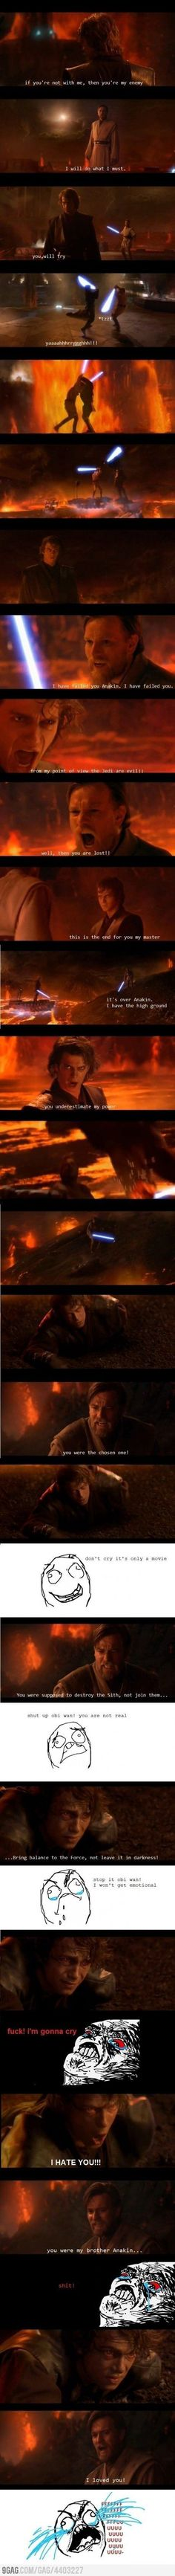 Anakin vs. Obi Wan in the Mustafar scene. Except I was crying as soon as Padme landed on the planet. Soo emotional. Star Wars Episode III Revenge of the Sith.